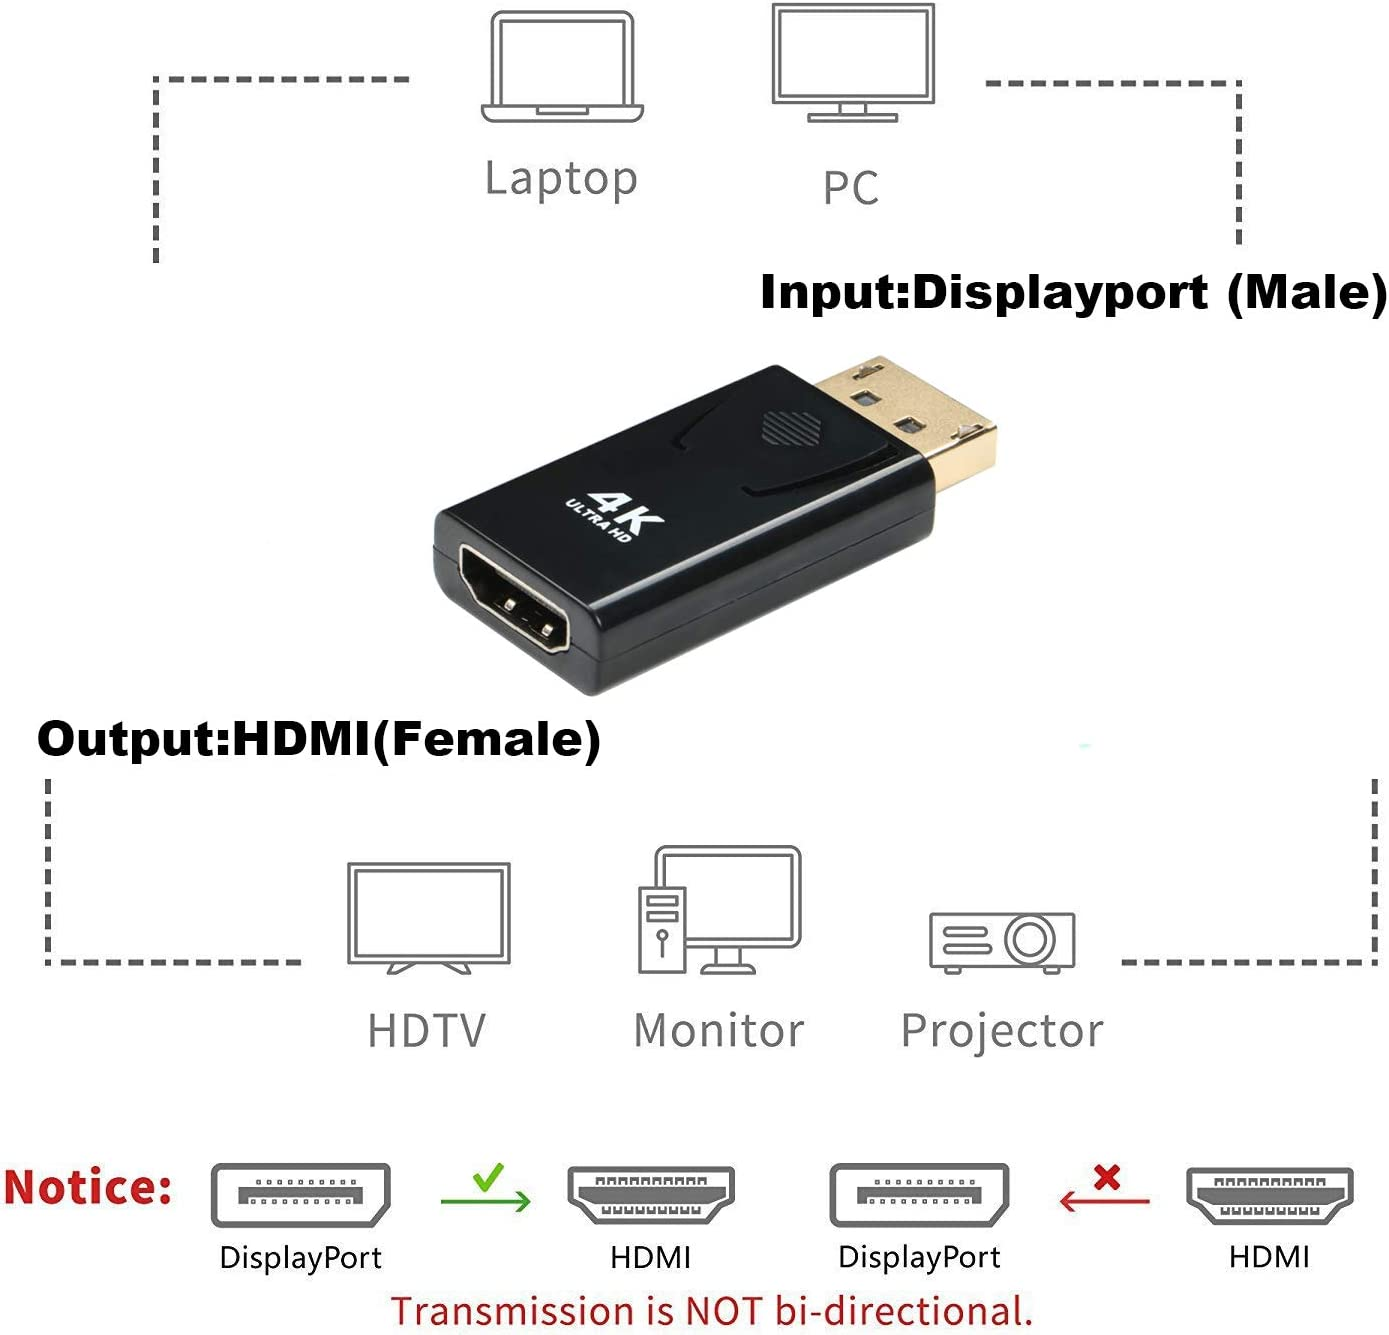 DisplayPort to HDMI Adapter 4K 2-Pack,UKYEE Display Port DP to HDMI 3840x2160p Male to Female Converter Compatible with Computer,Desktop,Labtop,PC,Monitor,HDTV.